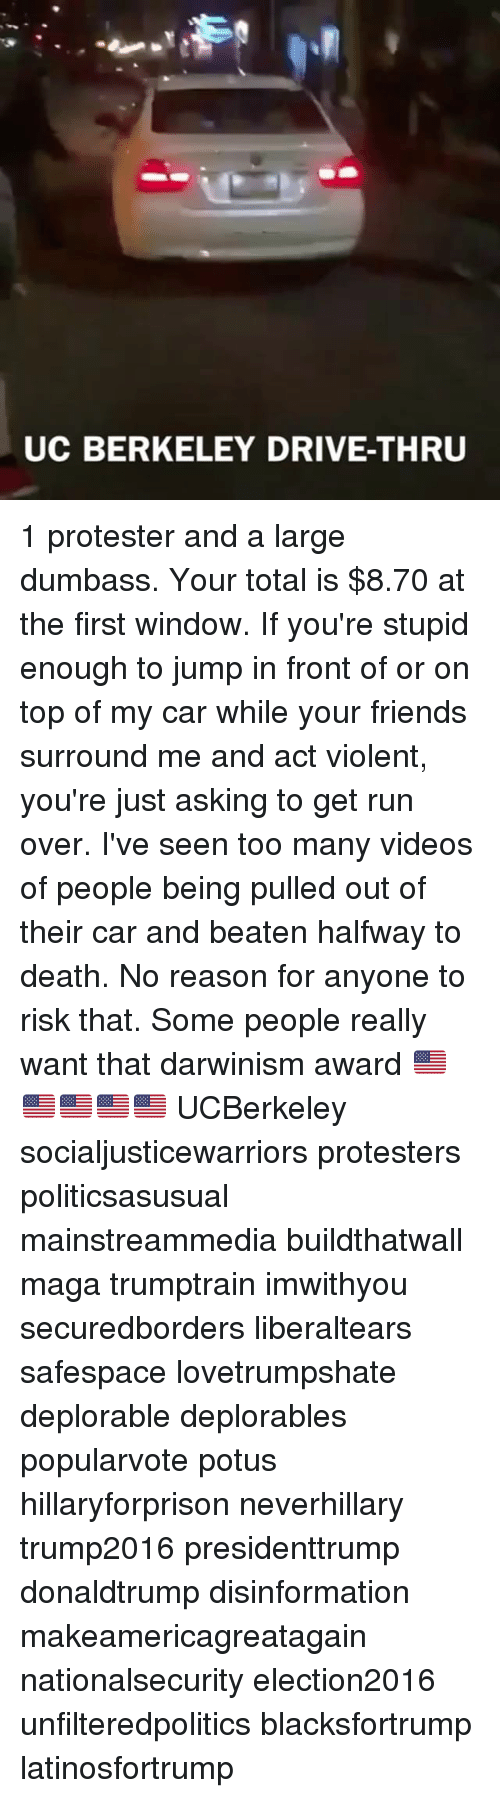 Memes, UC Berkeley, and Berkeley: UC BERKELEY DRIVE-THRU 1 protester and a large dumbass. Your total is $8.70 at the first window. If you're stupid enough to jump in front of or on top of my car while your friends surround me and act violent, you're just asking to get run over. I've seen too many videos of people being pulled out of their car and beaten halfway to death. No reason for anyone to risk that. Some people really want that darwinism award 🇺🇸🇺🇸🇺🇸🇺🇸🇺🇸 UCBerkeley socialjusticewarriors protesters politicsasusual mainstreammedia buildthatwall maga trumptrain imwithyou securedborders liberaltears safespace lovetrumpshate deplorable deplorables popularvote potus hillaryforprison neverhillary trump2016 presidenttrump donaldtrump disinformation makeamericagreatagain nationalsecurity election2016 unfilteredpolitics blacksfortrump latinosfortrump